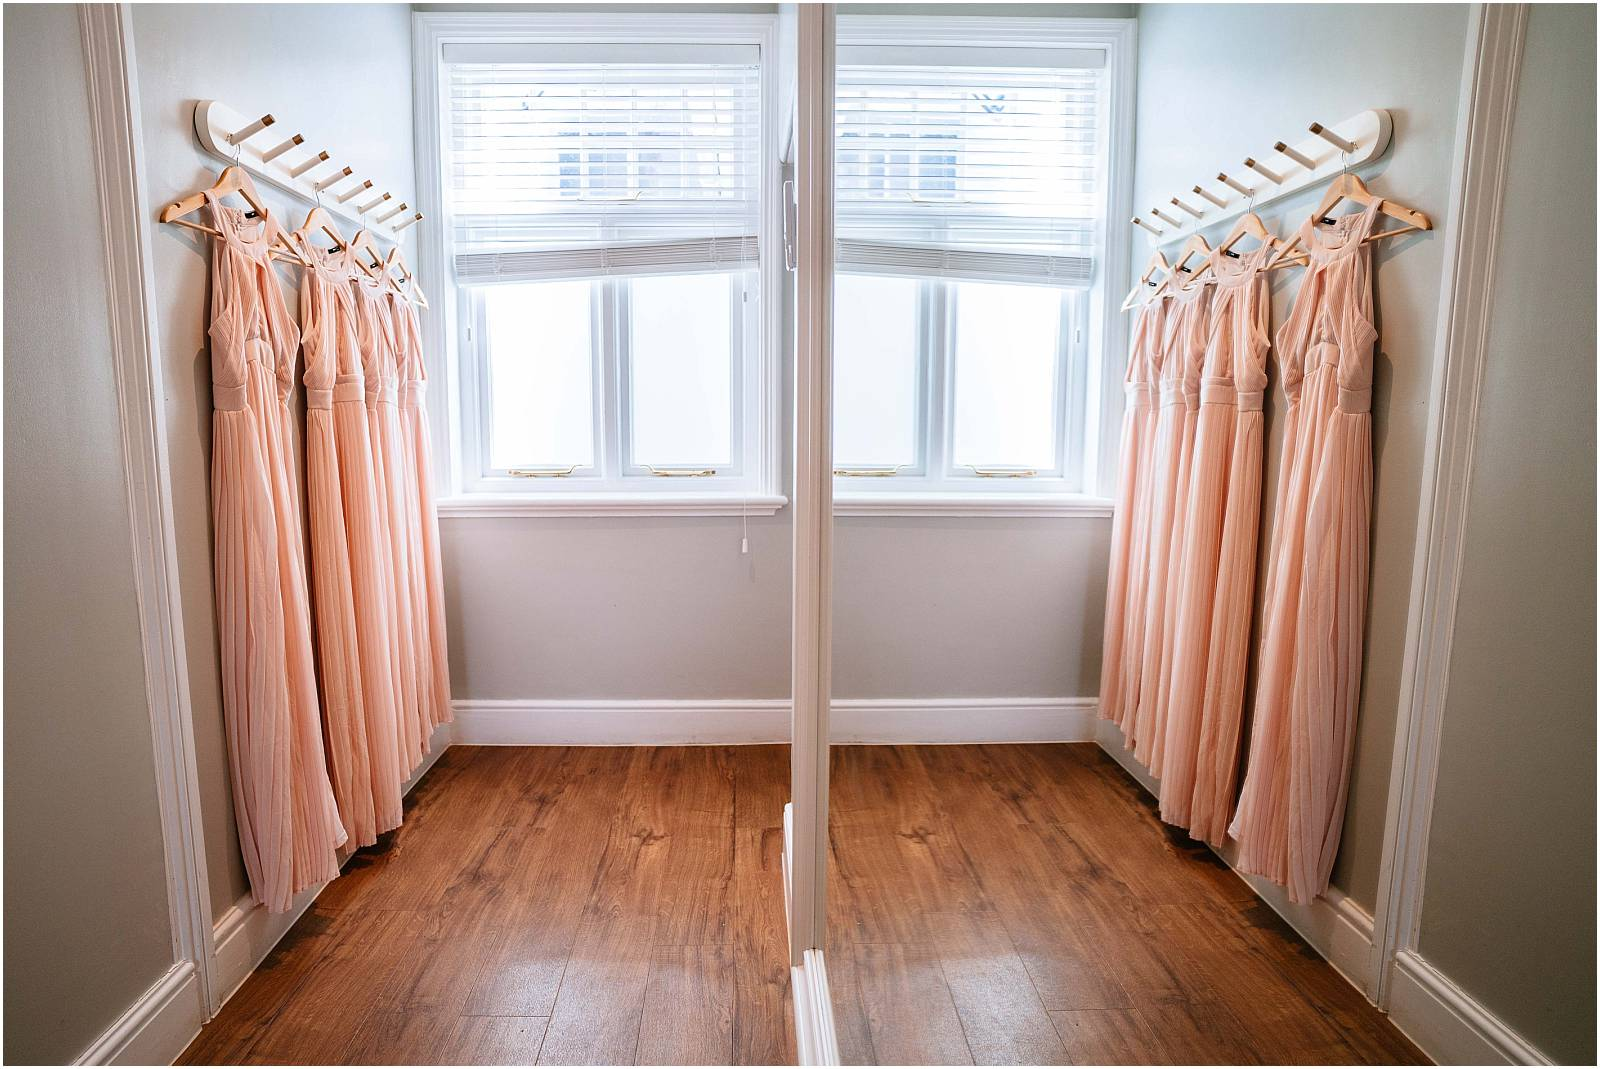 pink bridesmaid dresses reflected in mirror